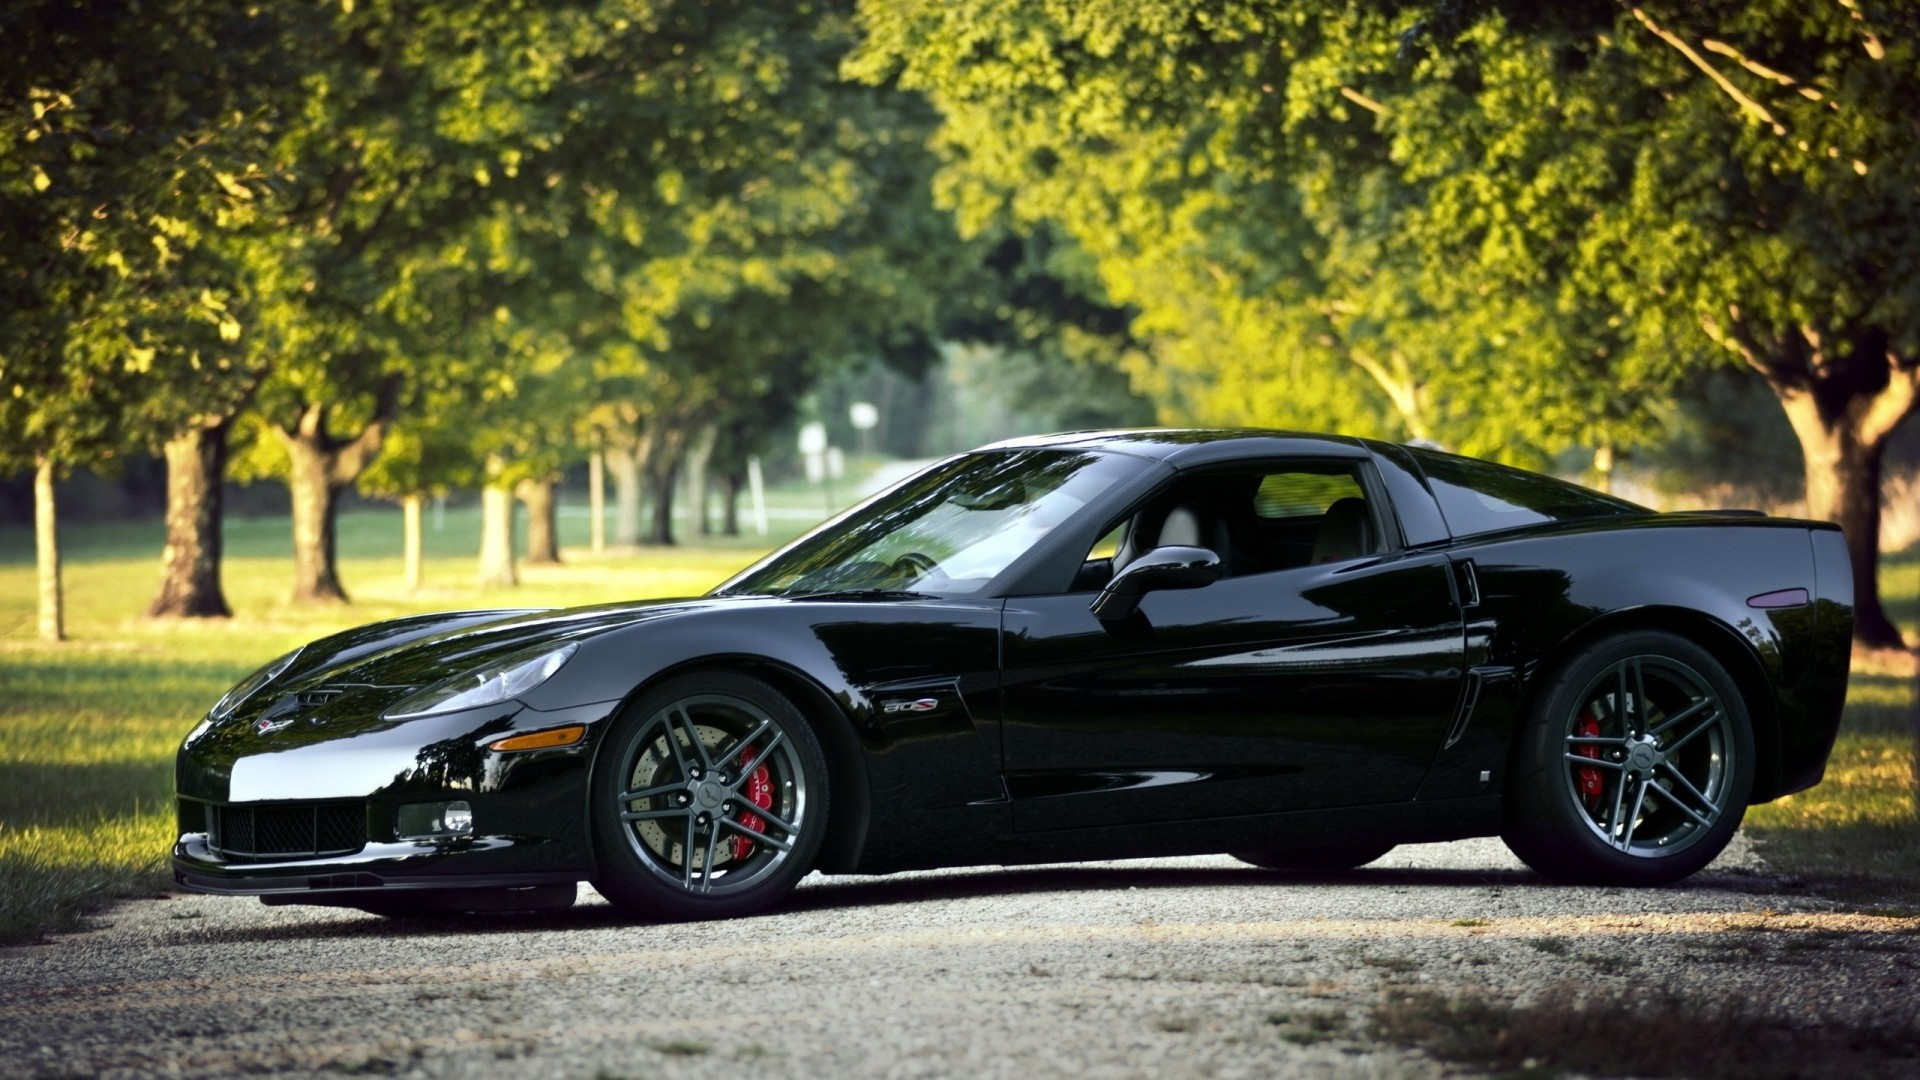 Wallpaper chevrolet corvette, black, nature, cars